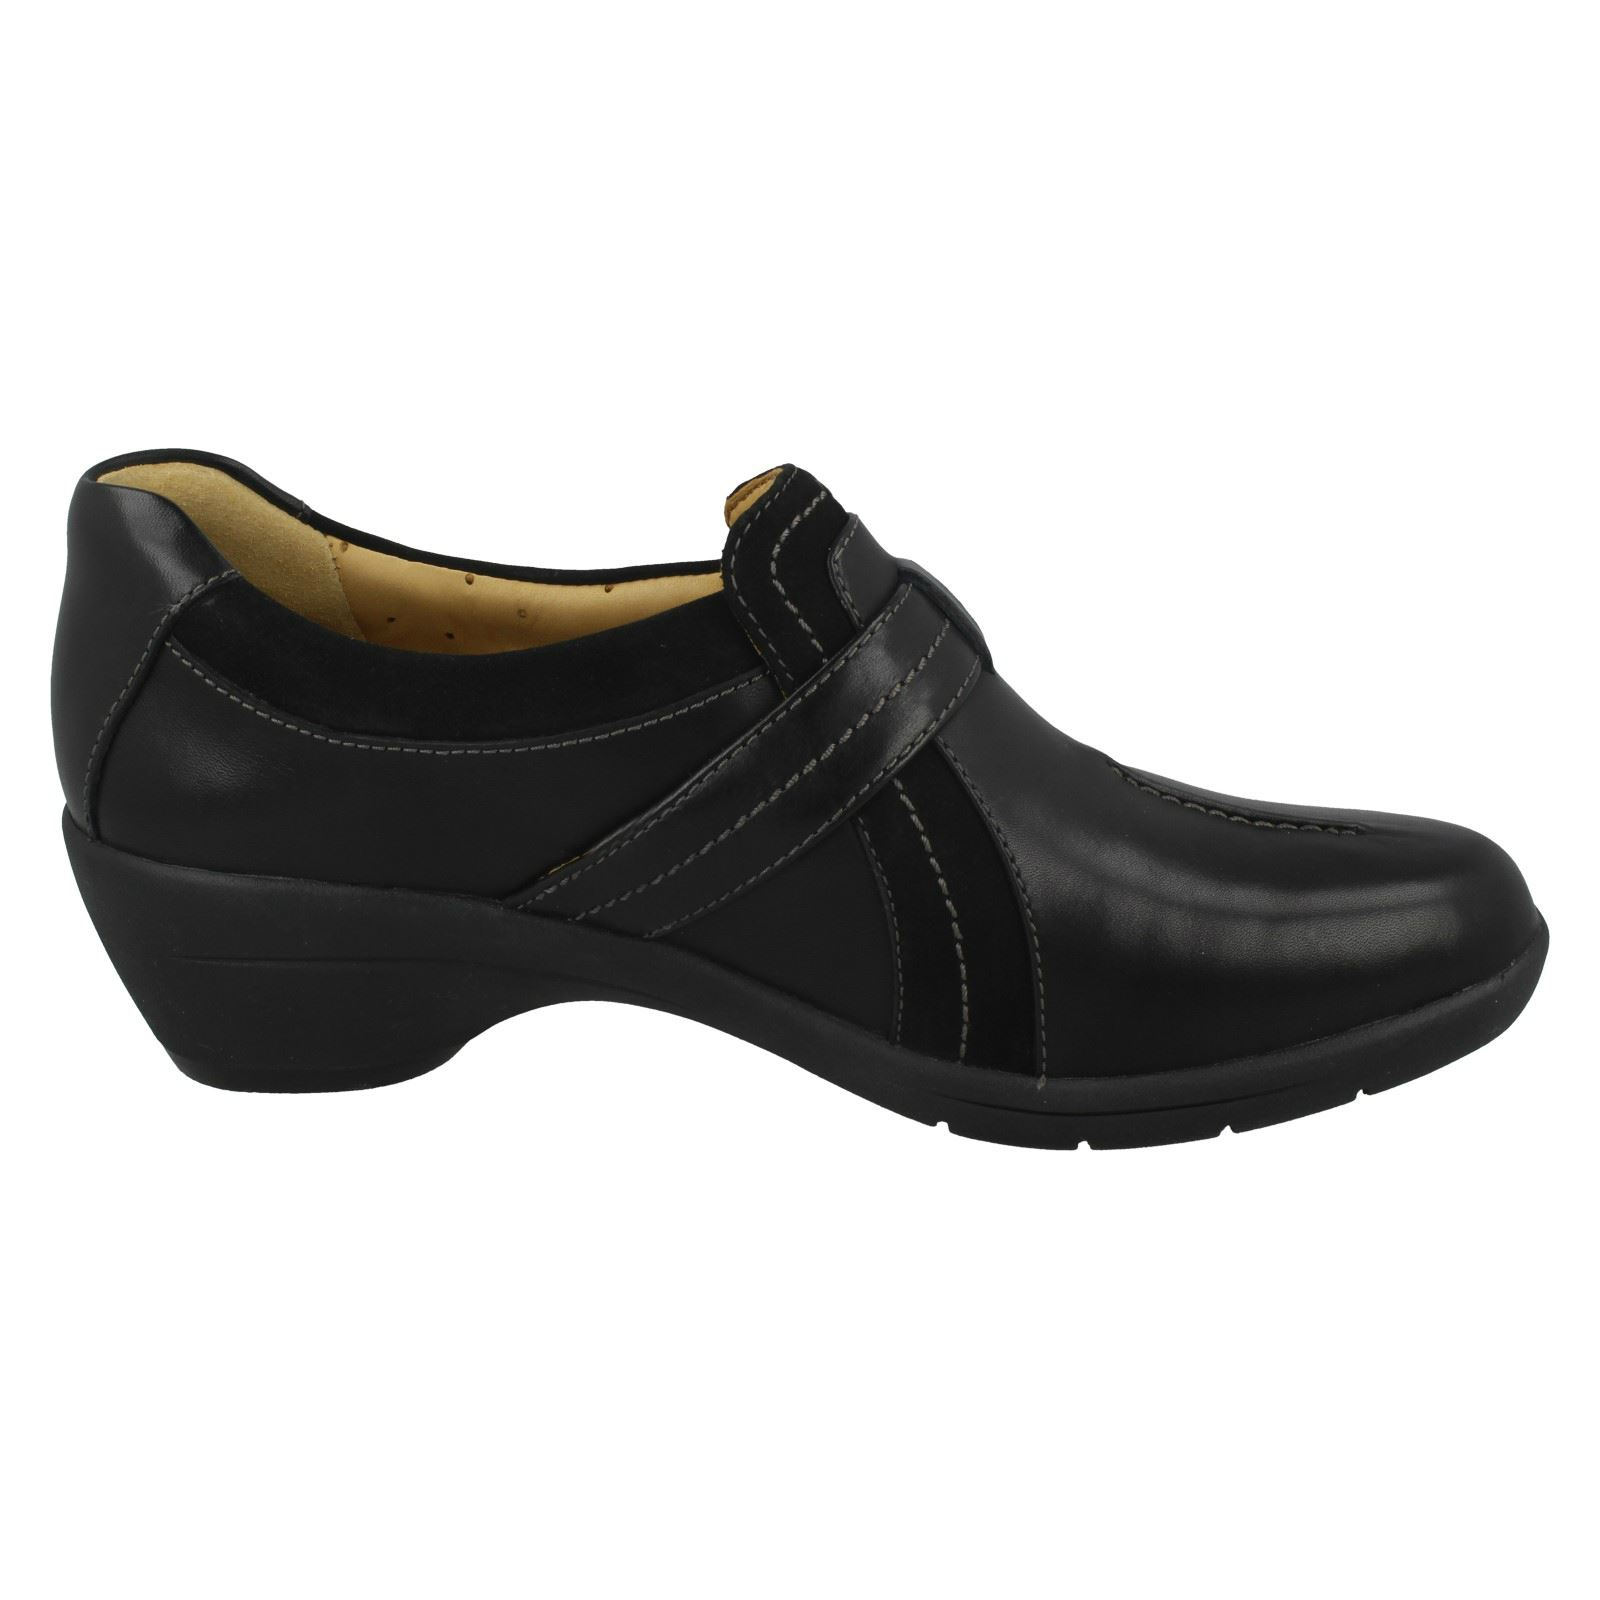 Ladies Ladies Ladies Clarks Block Heeled shoes 'Un Faina' 96b20b